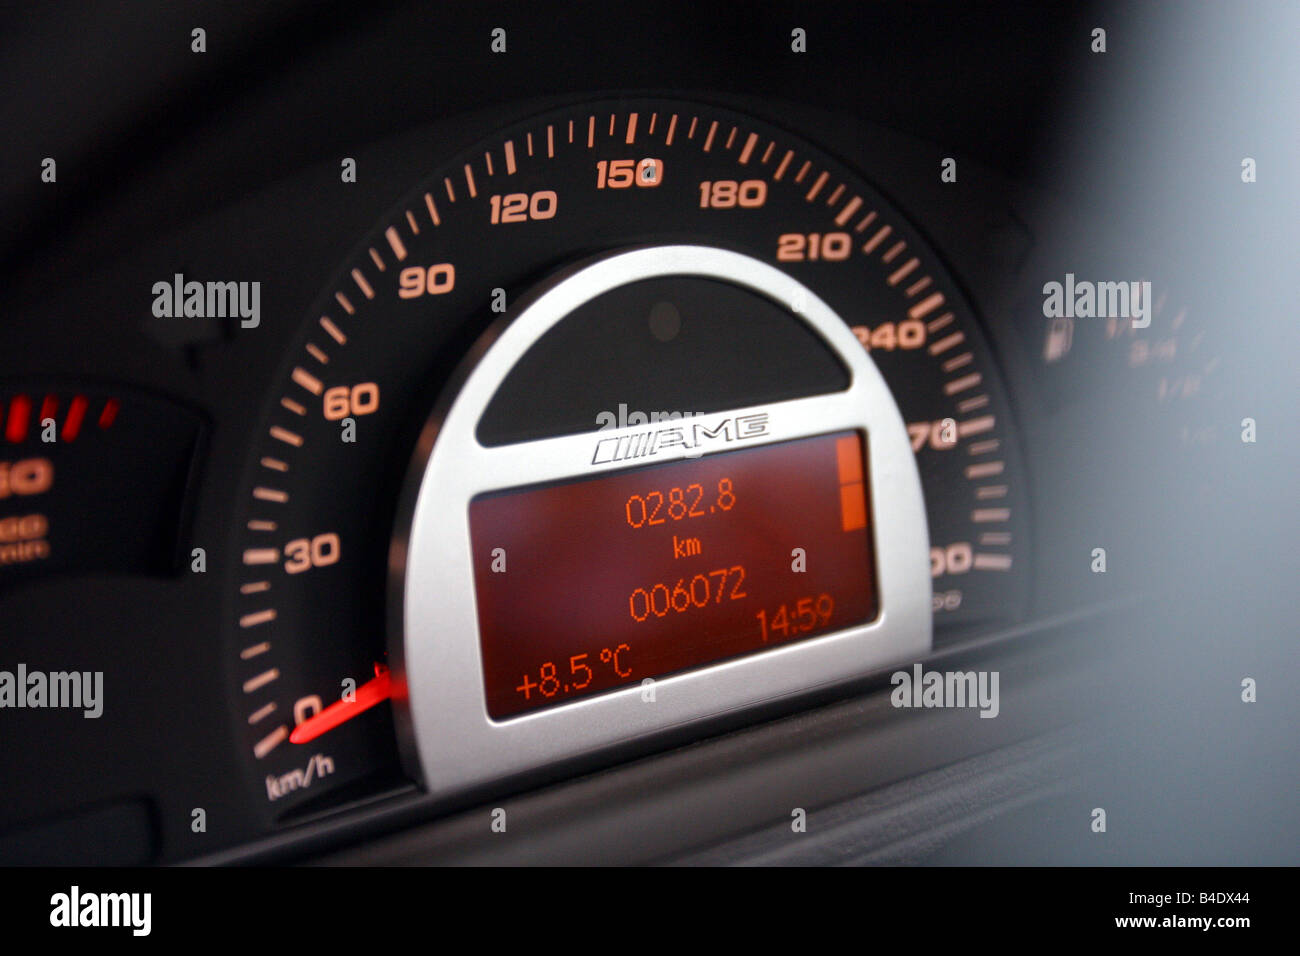 Car, Mercedes C 30 CDI AMG, model year 2002, silver, medium class, Tuning, 231 PS, Detailed view, Cockpit, technique/accessory, - Stock Image